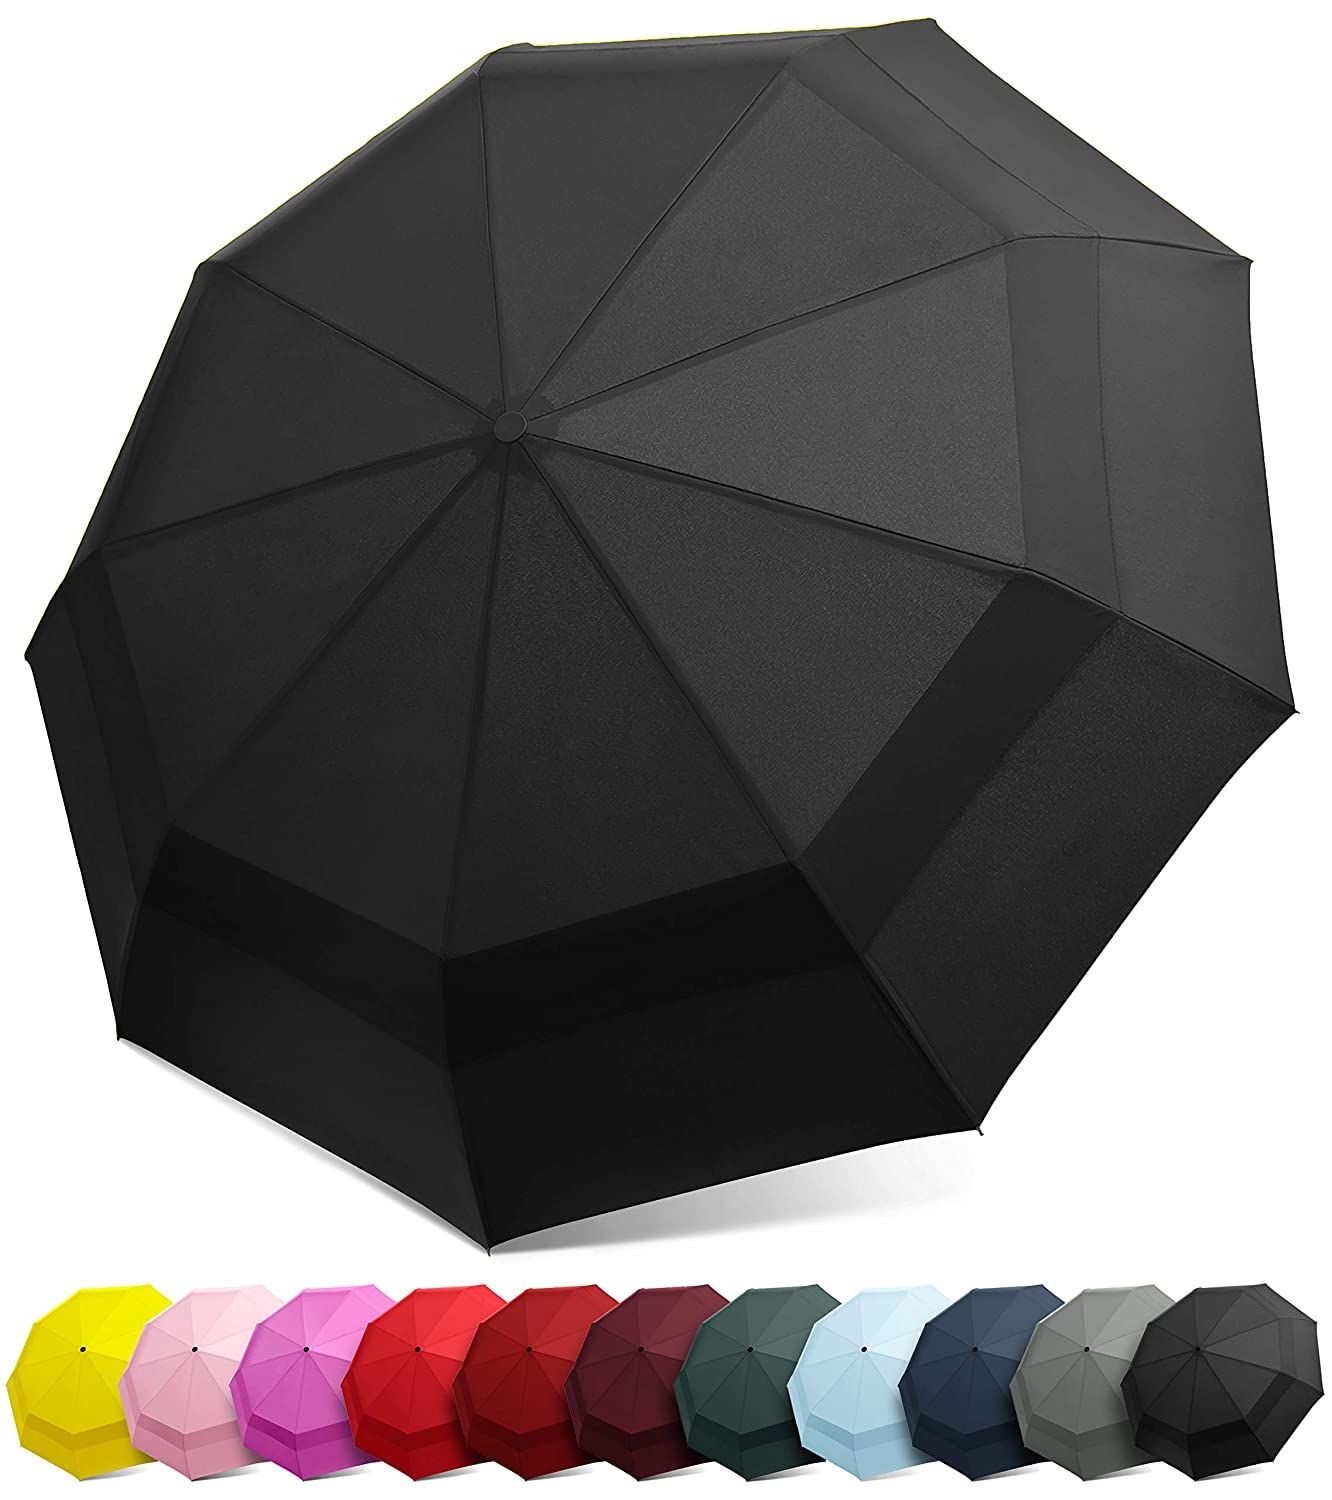 Top 10 Best Umbrellas Reviews in 2020 6